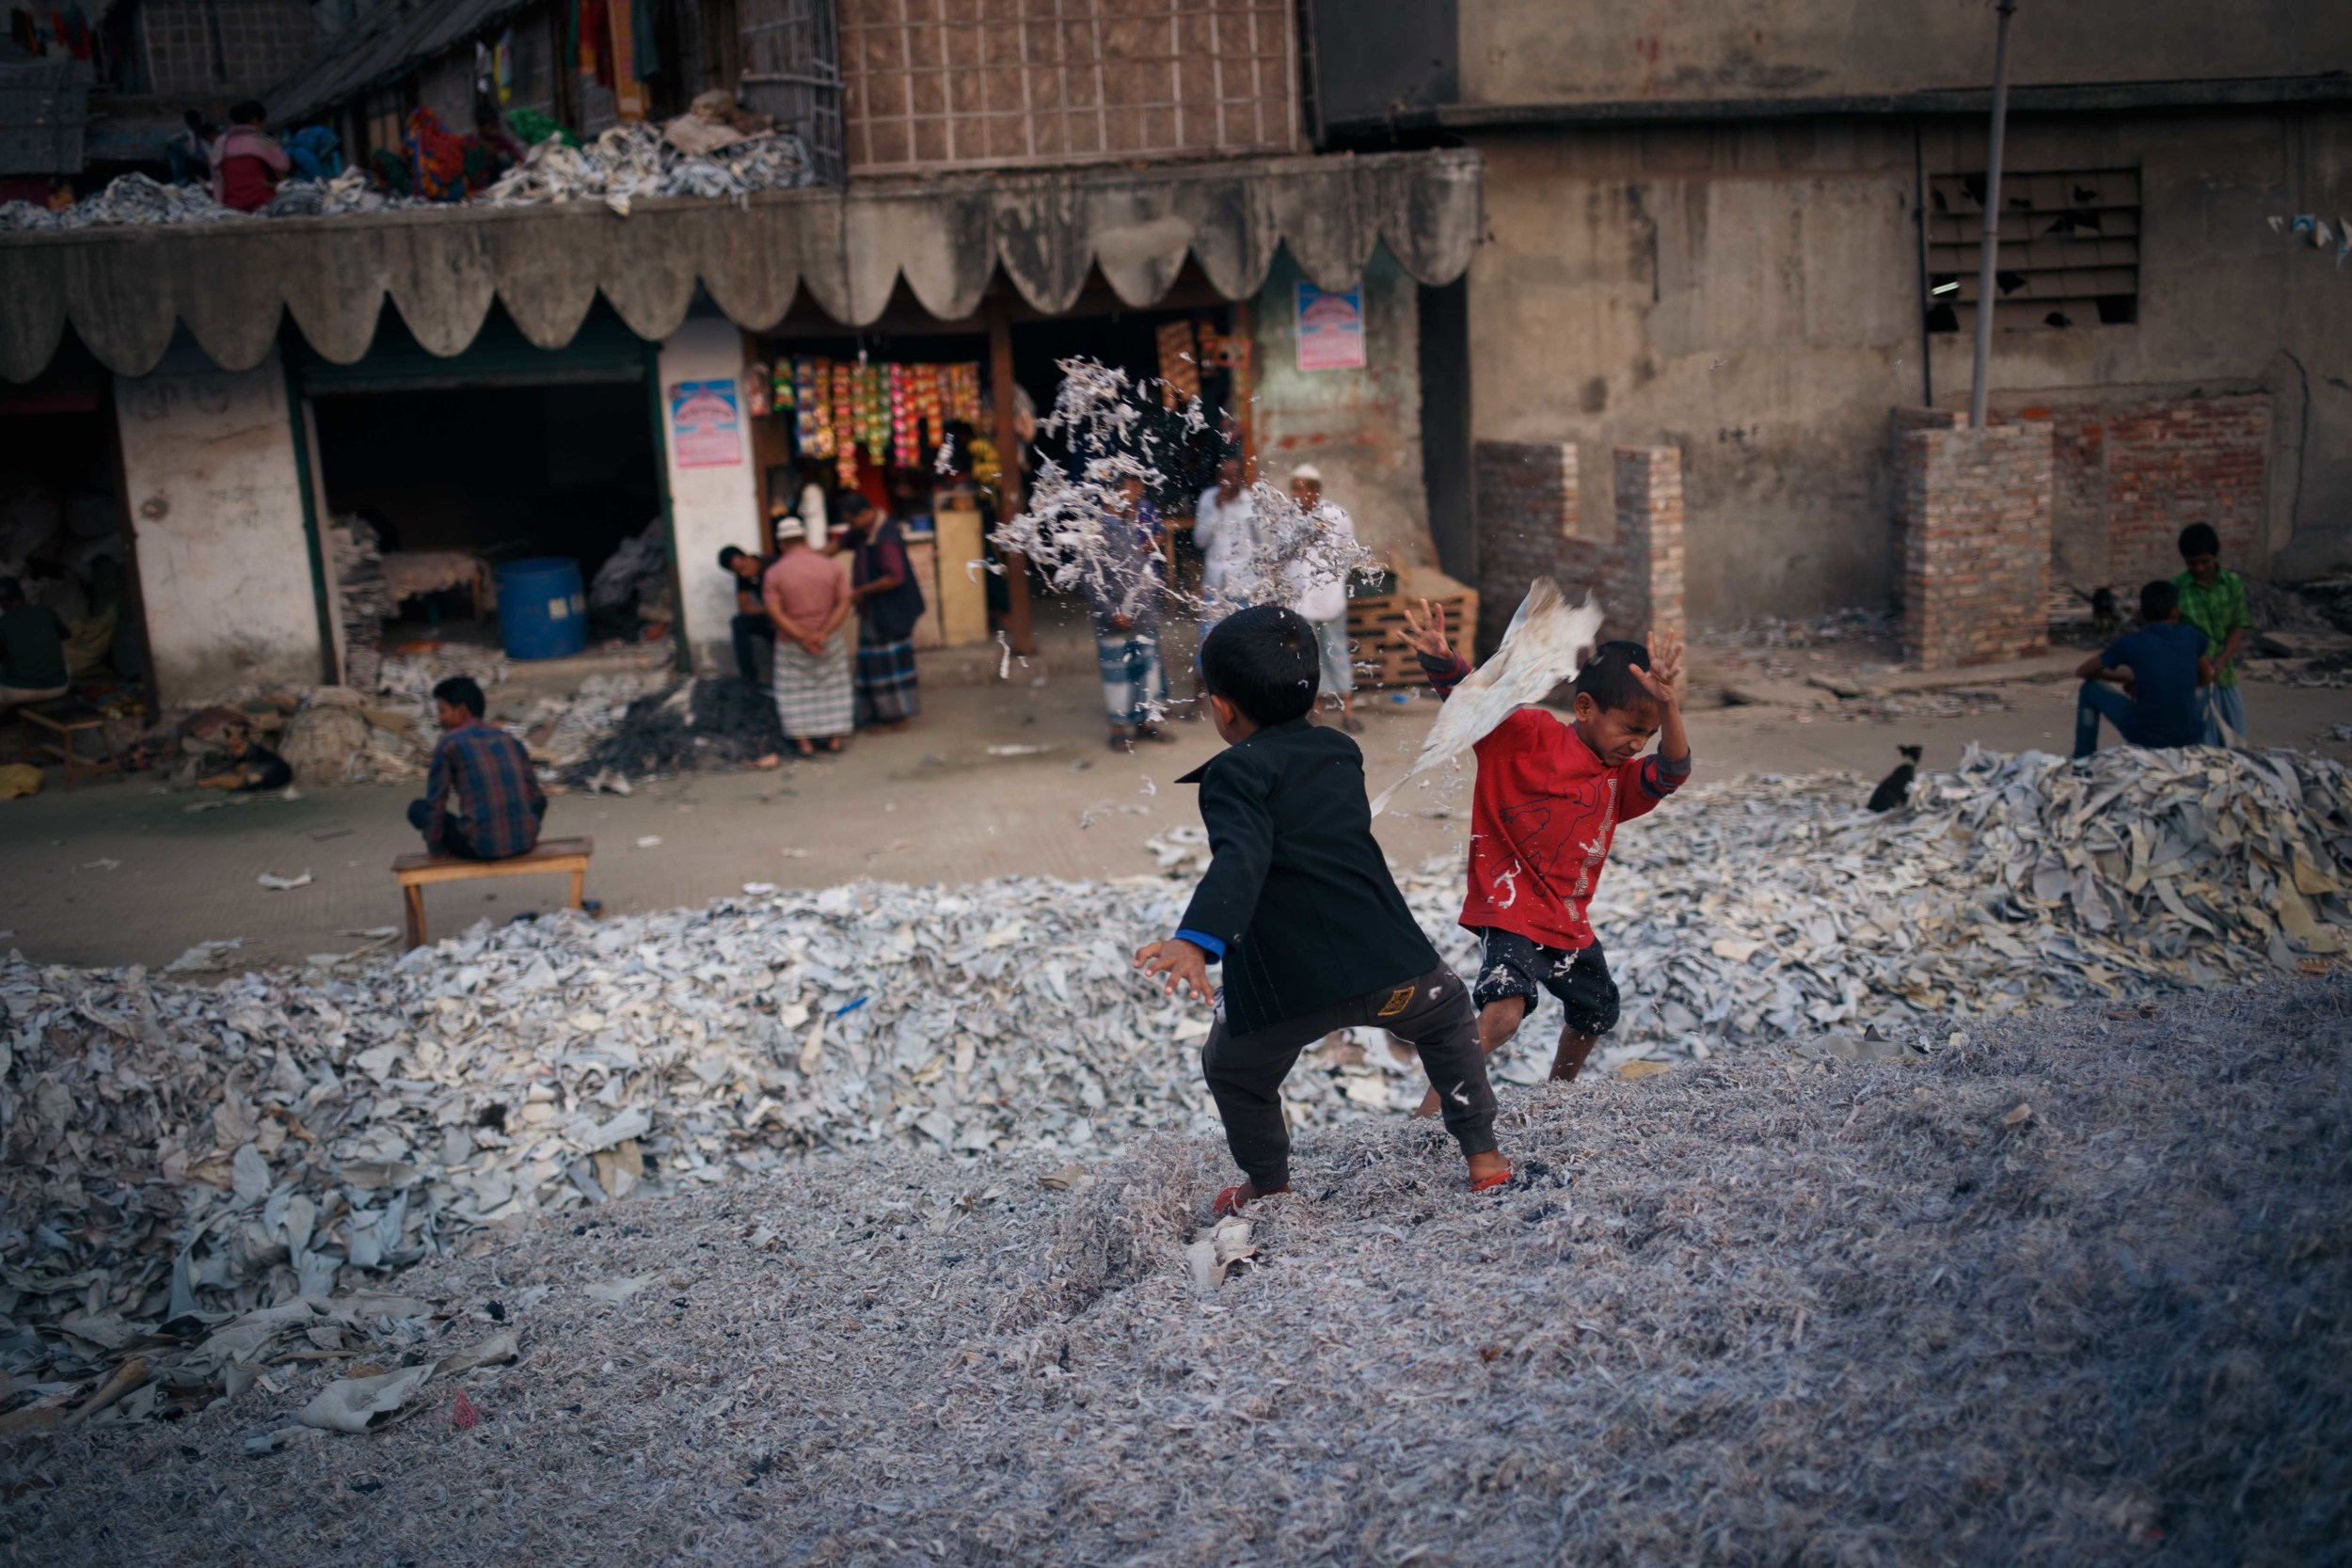 Children play among piles of discarded leather.